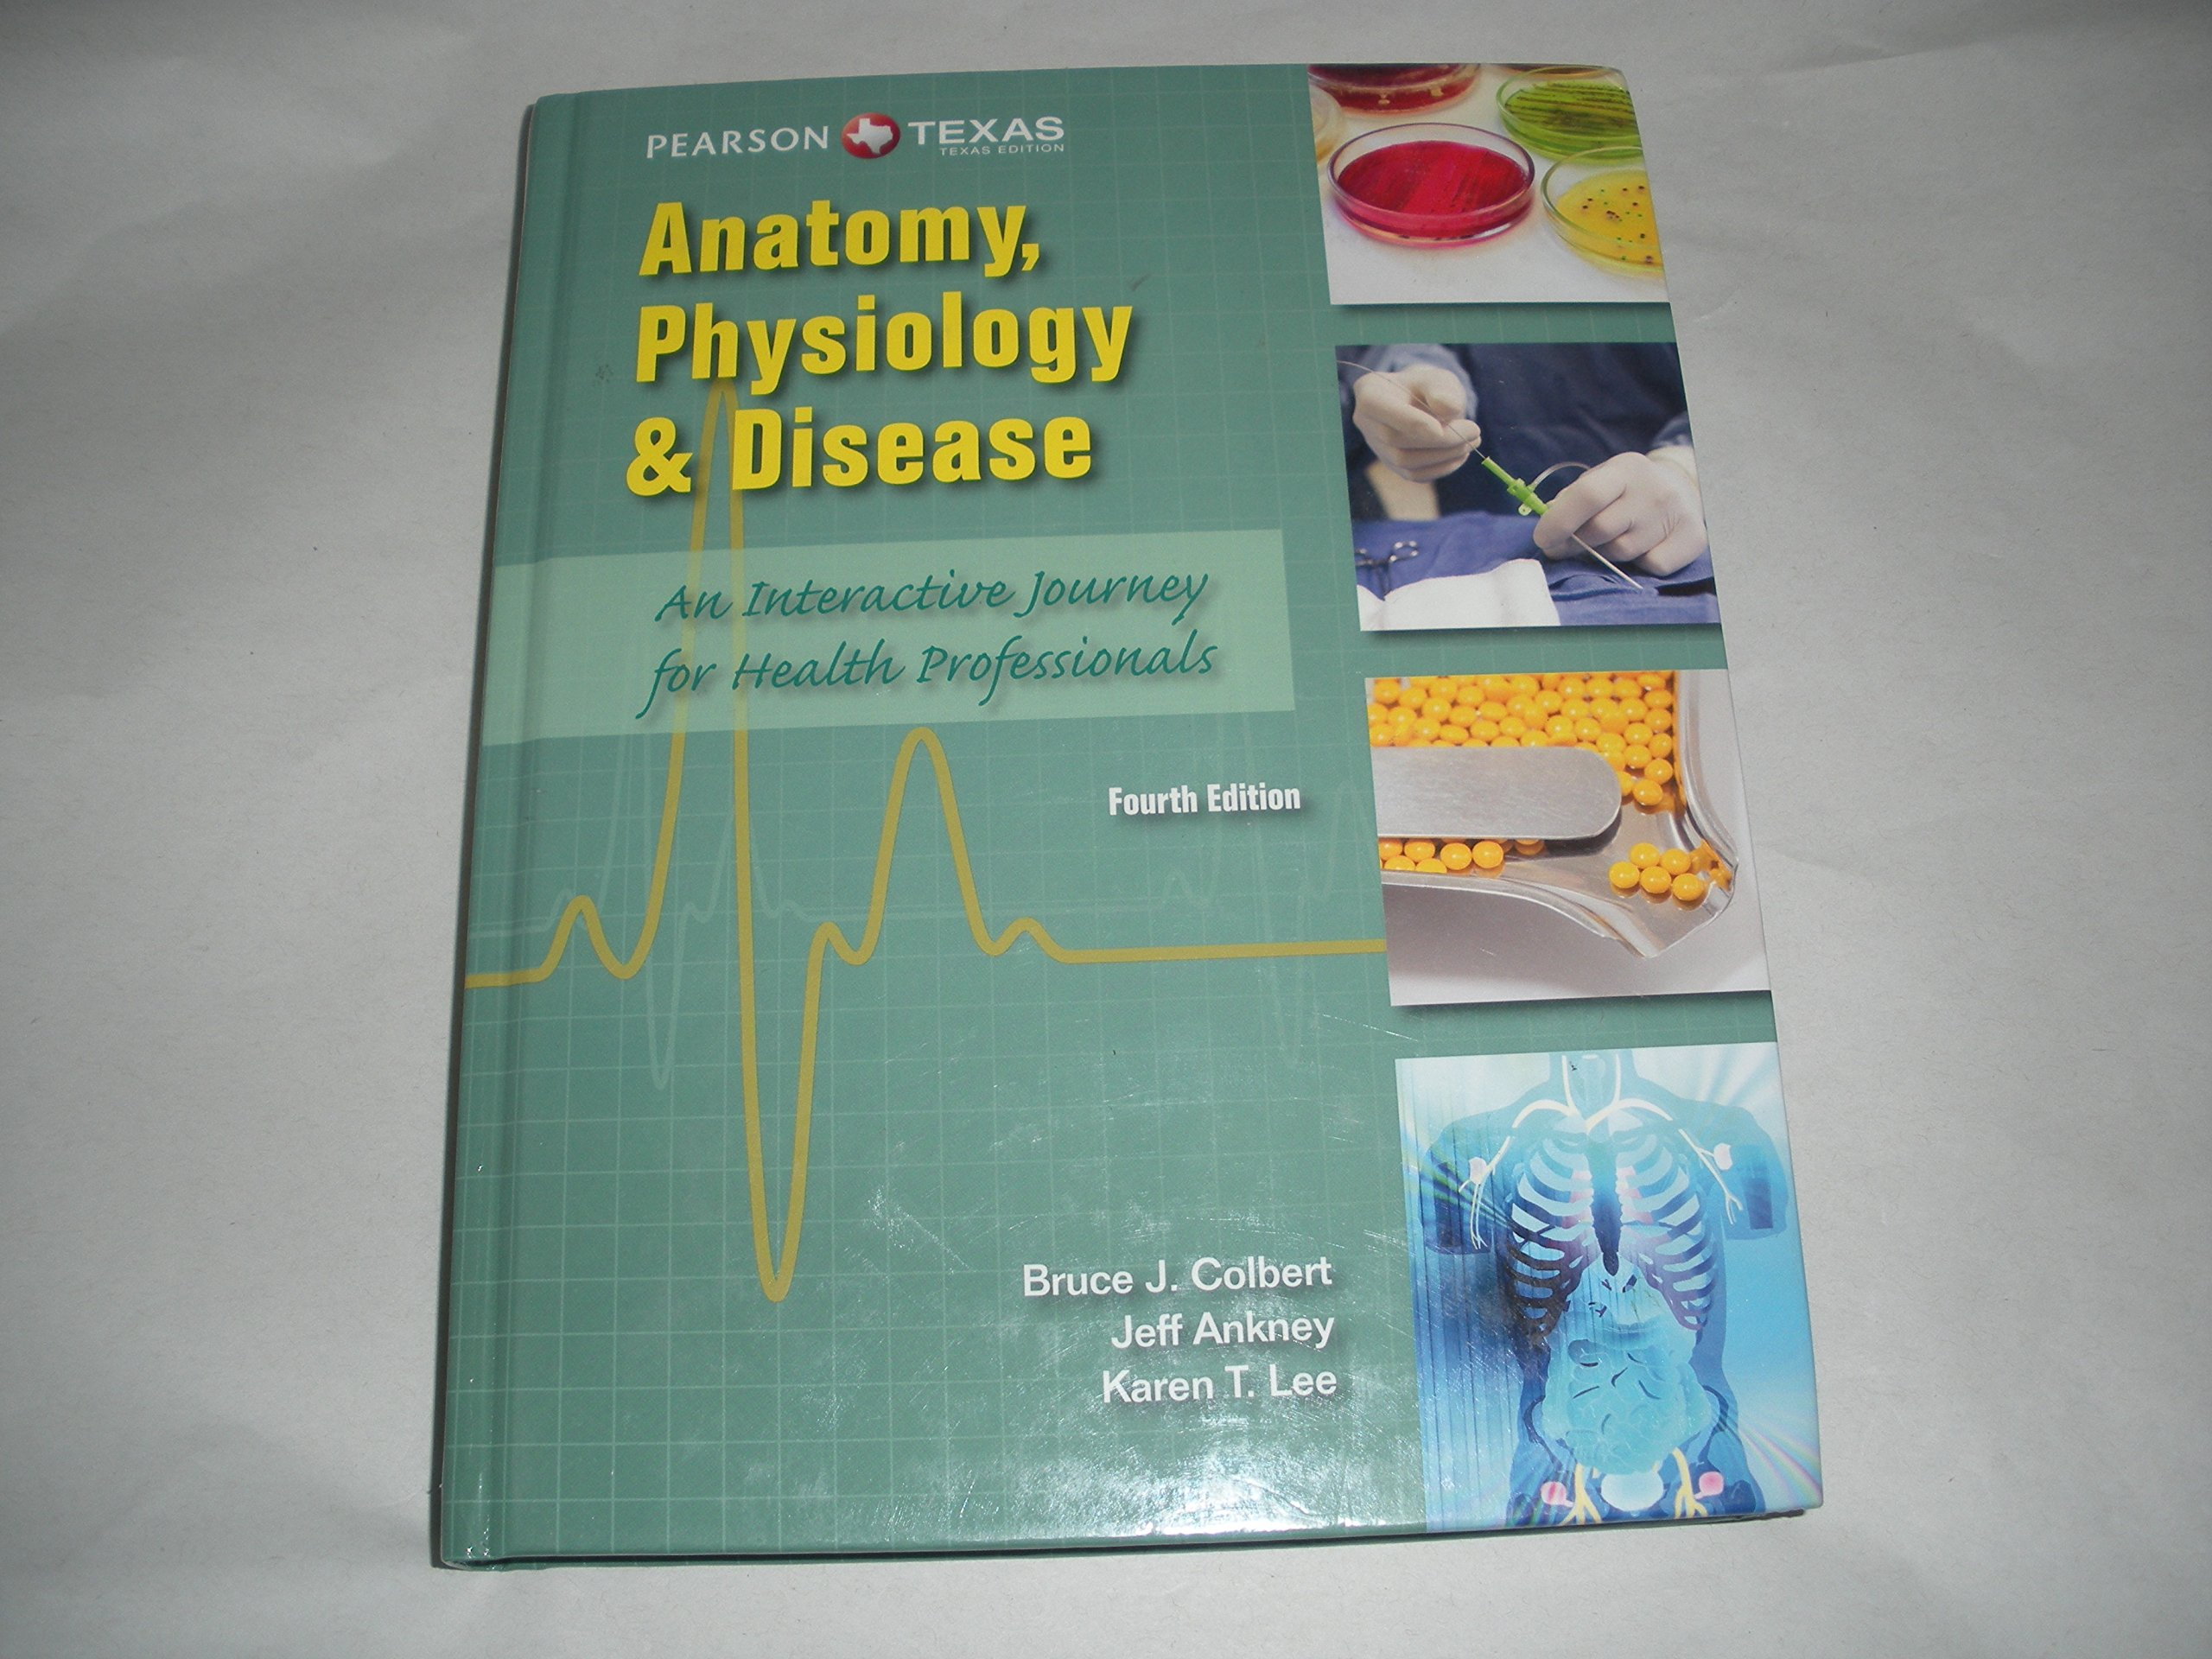 Download Anatomy, Physiology, and Disease -- Texas pdf